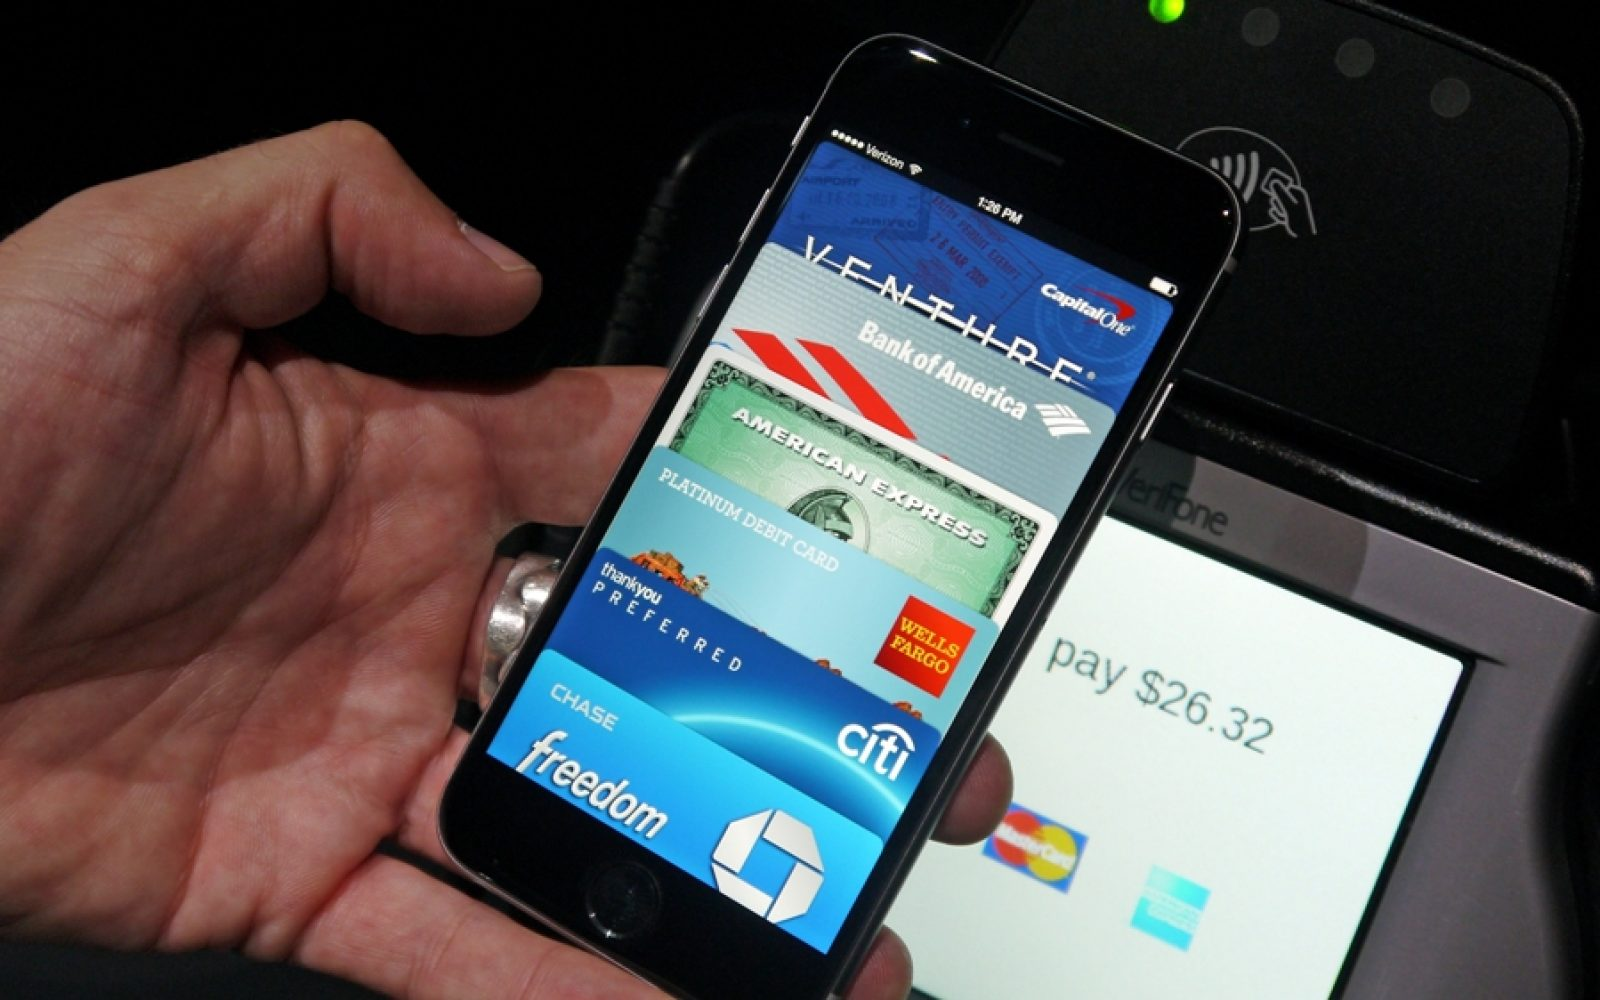 iOS 8 How-to: Remotely remove your credit cards from Apple Pay - 9to5Mac